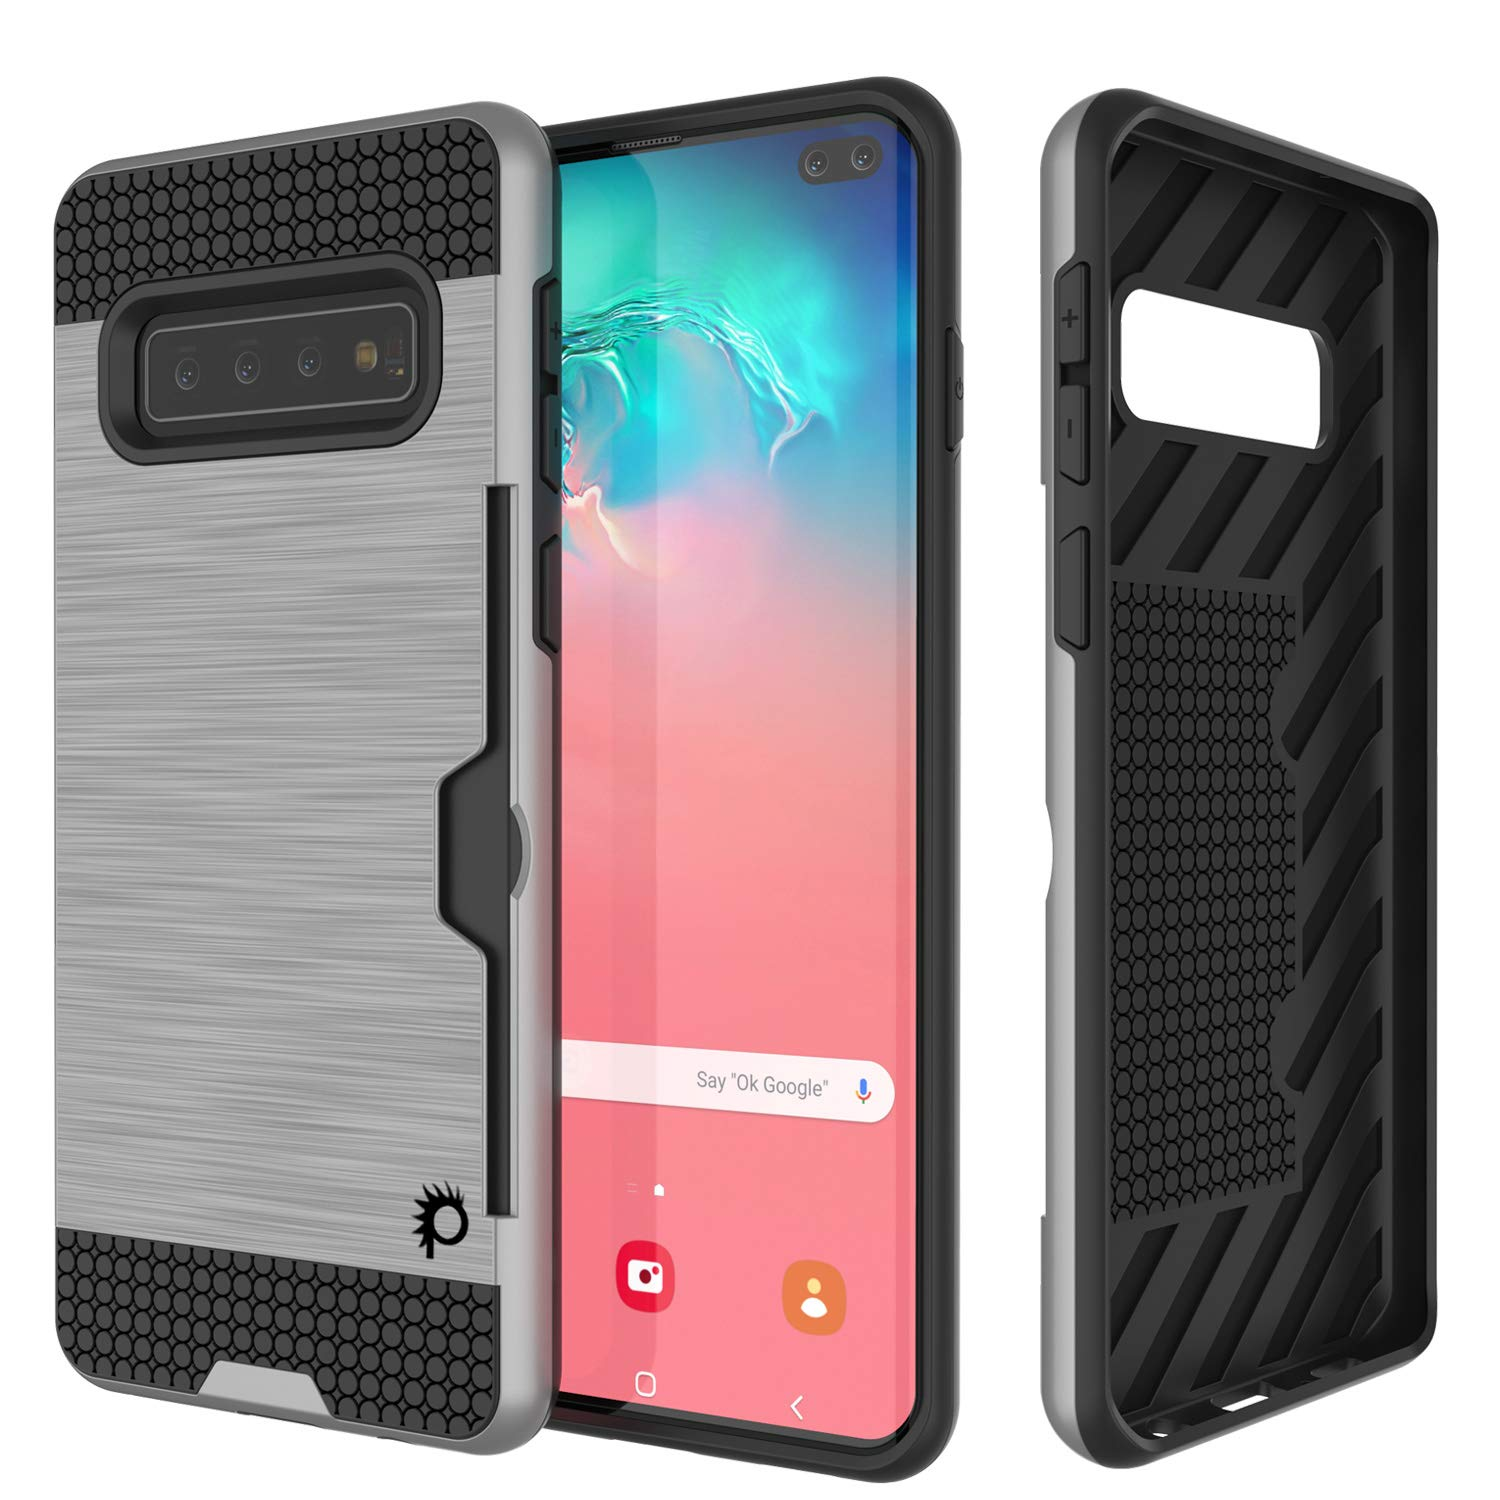 Galaxy S10+ Plus  Case, PUNKcase [SLOT Series] [Slim Fit] Dual-Layer Armor Cover w/Integrated Anti-Shock System, Credit Card Slot [Silver]